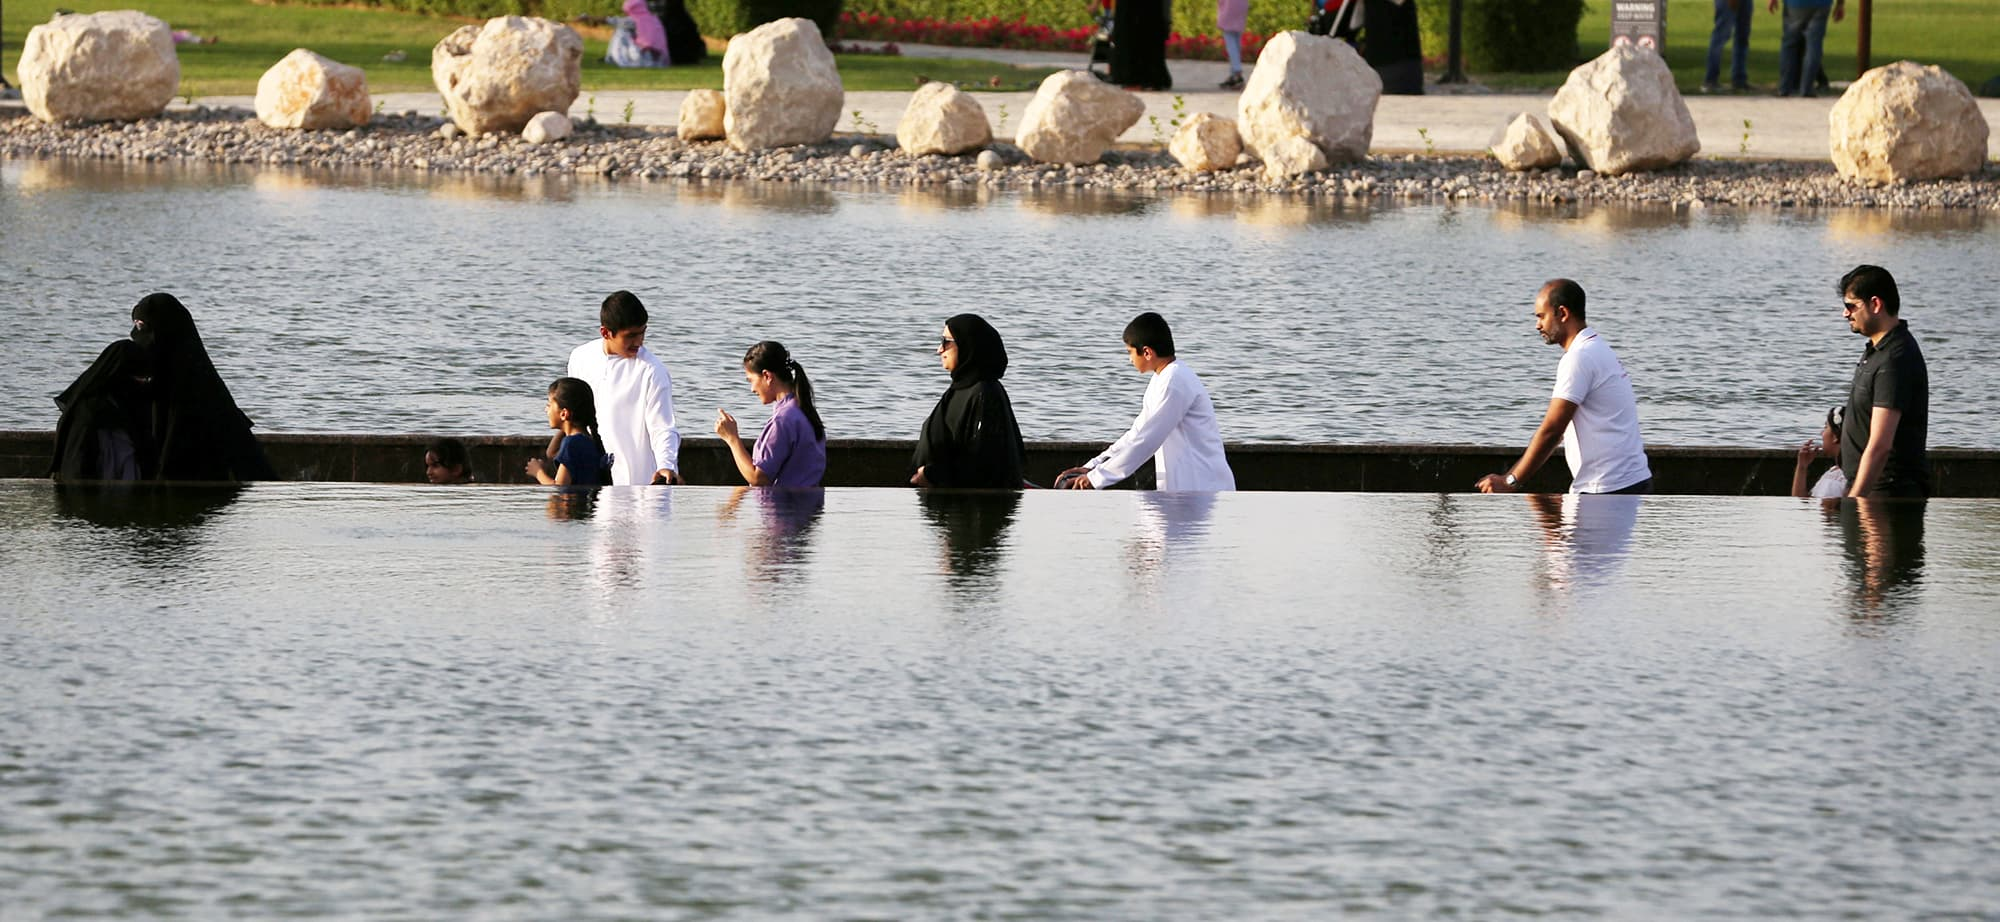 Visitors are seen crossing the lake at Dubai's Quranic Park in Dubai, UAE April 6, 2019. Picture taken April 6, 2019. REUTERS/Satish Kumar